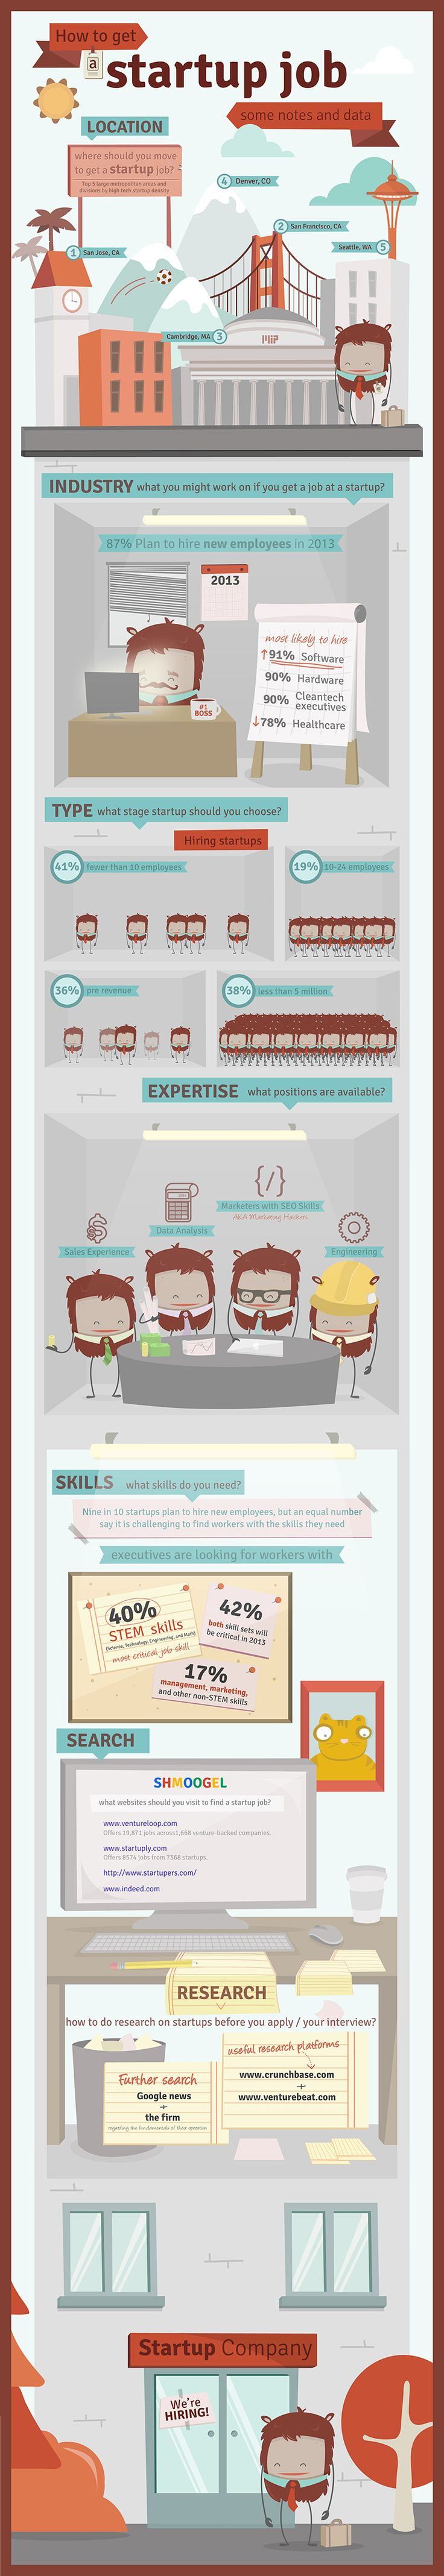 How To Get Startup Job Some Notes And Data   #Job #How #Career #Infographic